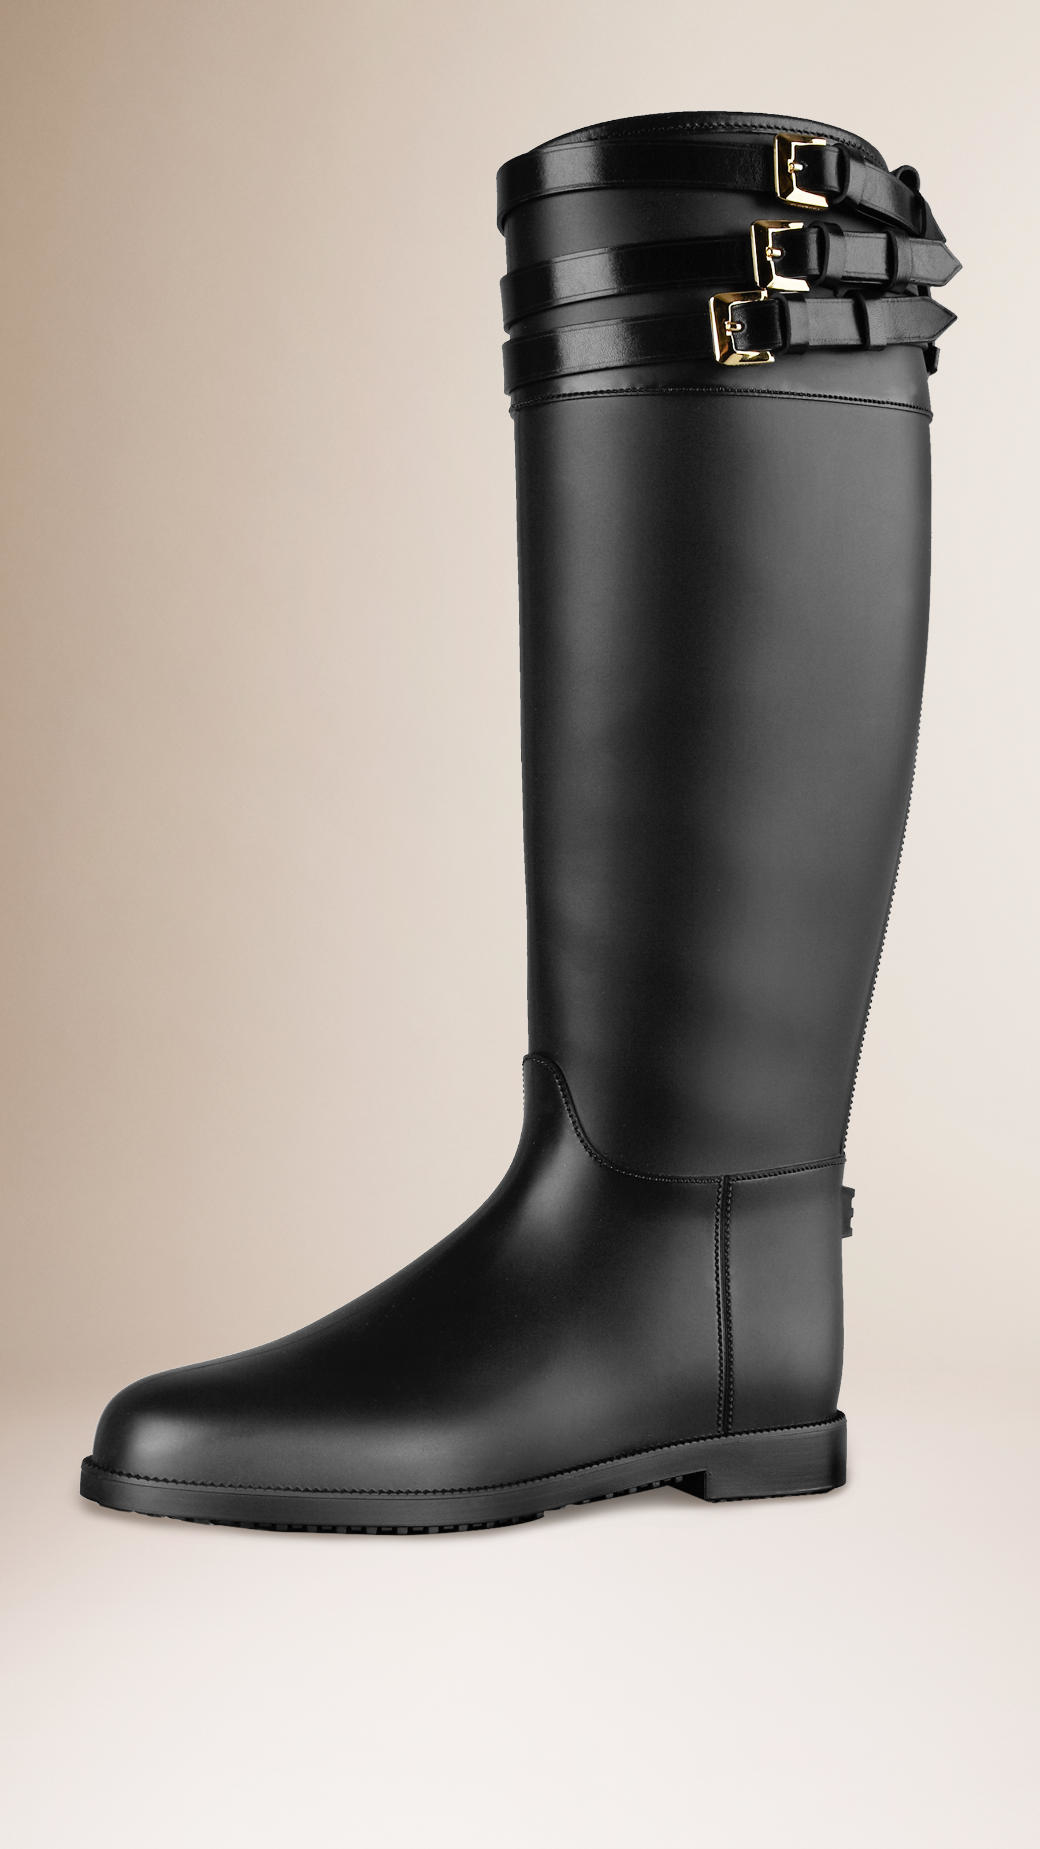 Burberry Belted Equestrian Rain Boots in Black | Lyst